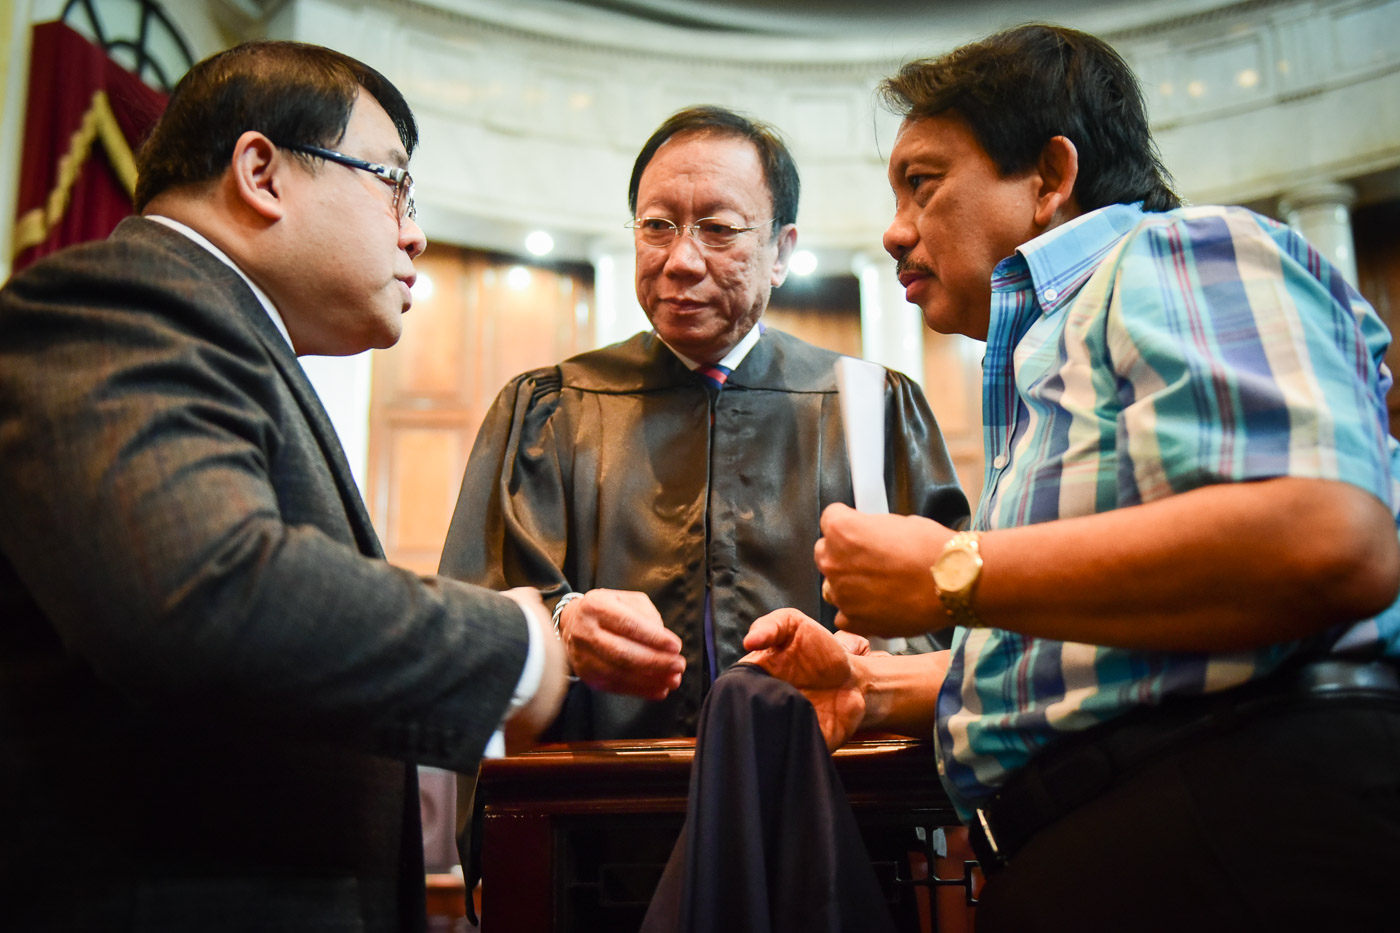 CALIDA AS SOLGEN. Solicitor General Jose Calida talks to VACC's Ferdinand Topacio (left) and Dante Jimenez (right) during the Supreme Court's oral arguments. File photo by LeAnne Jazul/Rappler